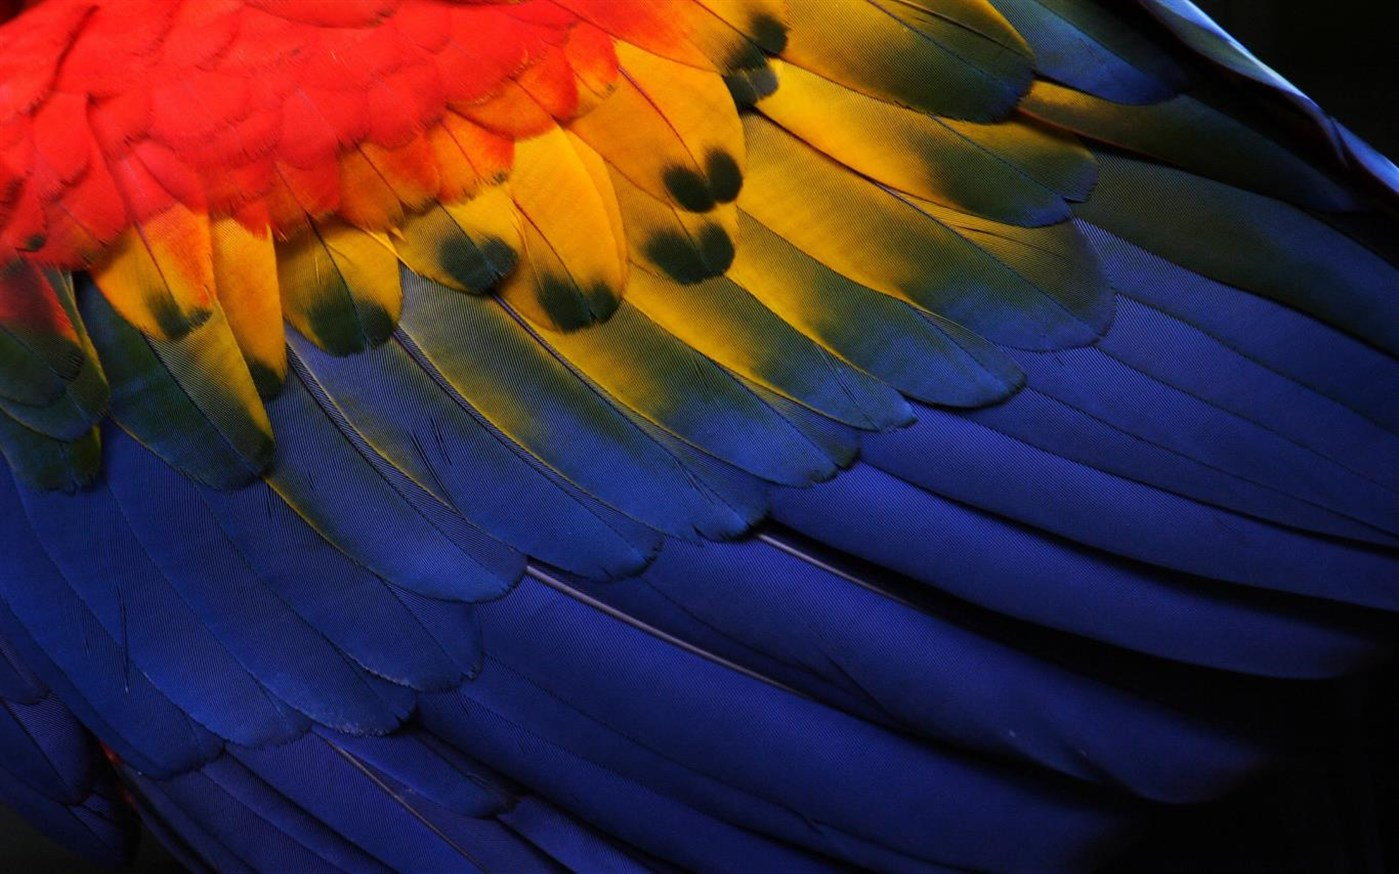 photo of Windows 10 Users: Download this amazing new 'Feathers' theme from Microsoft image